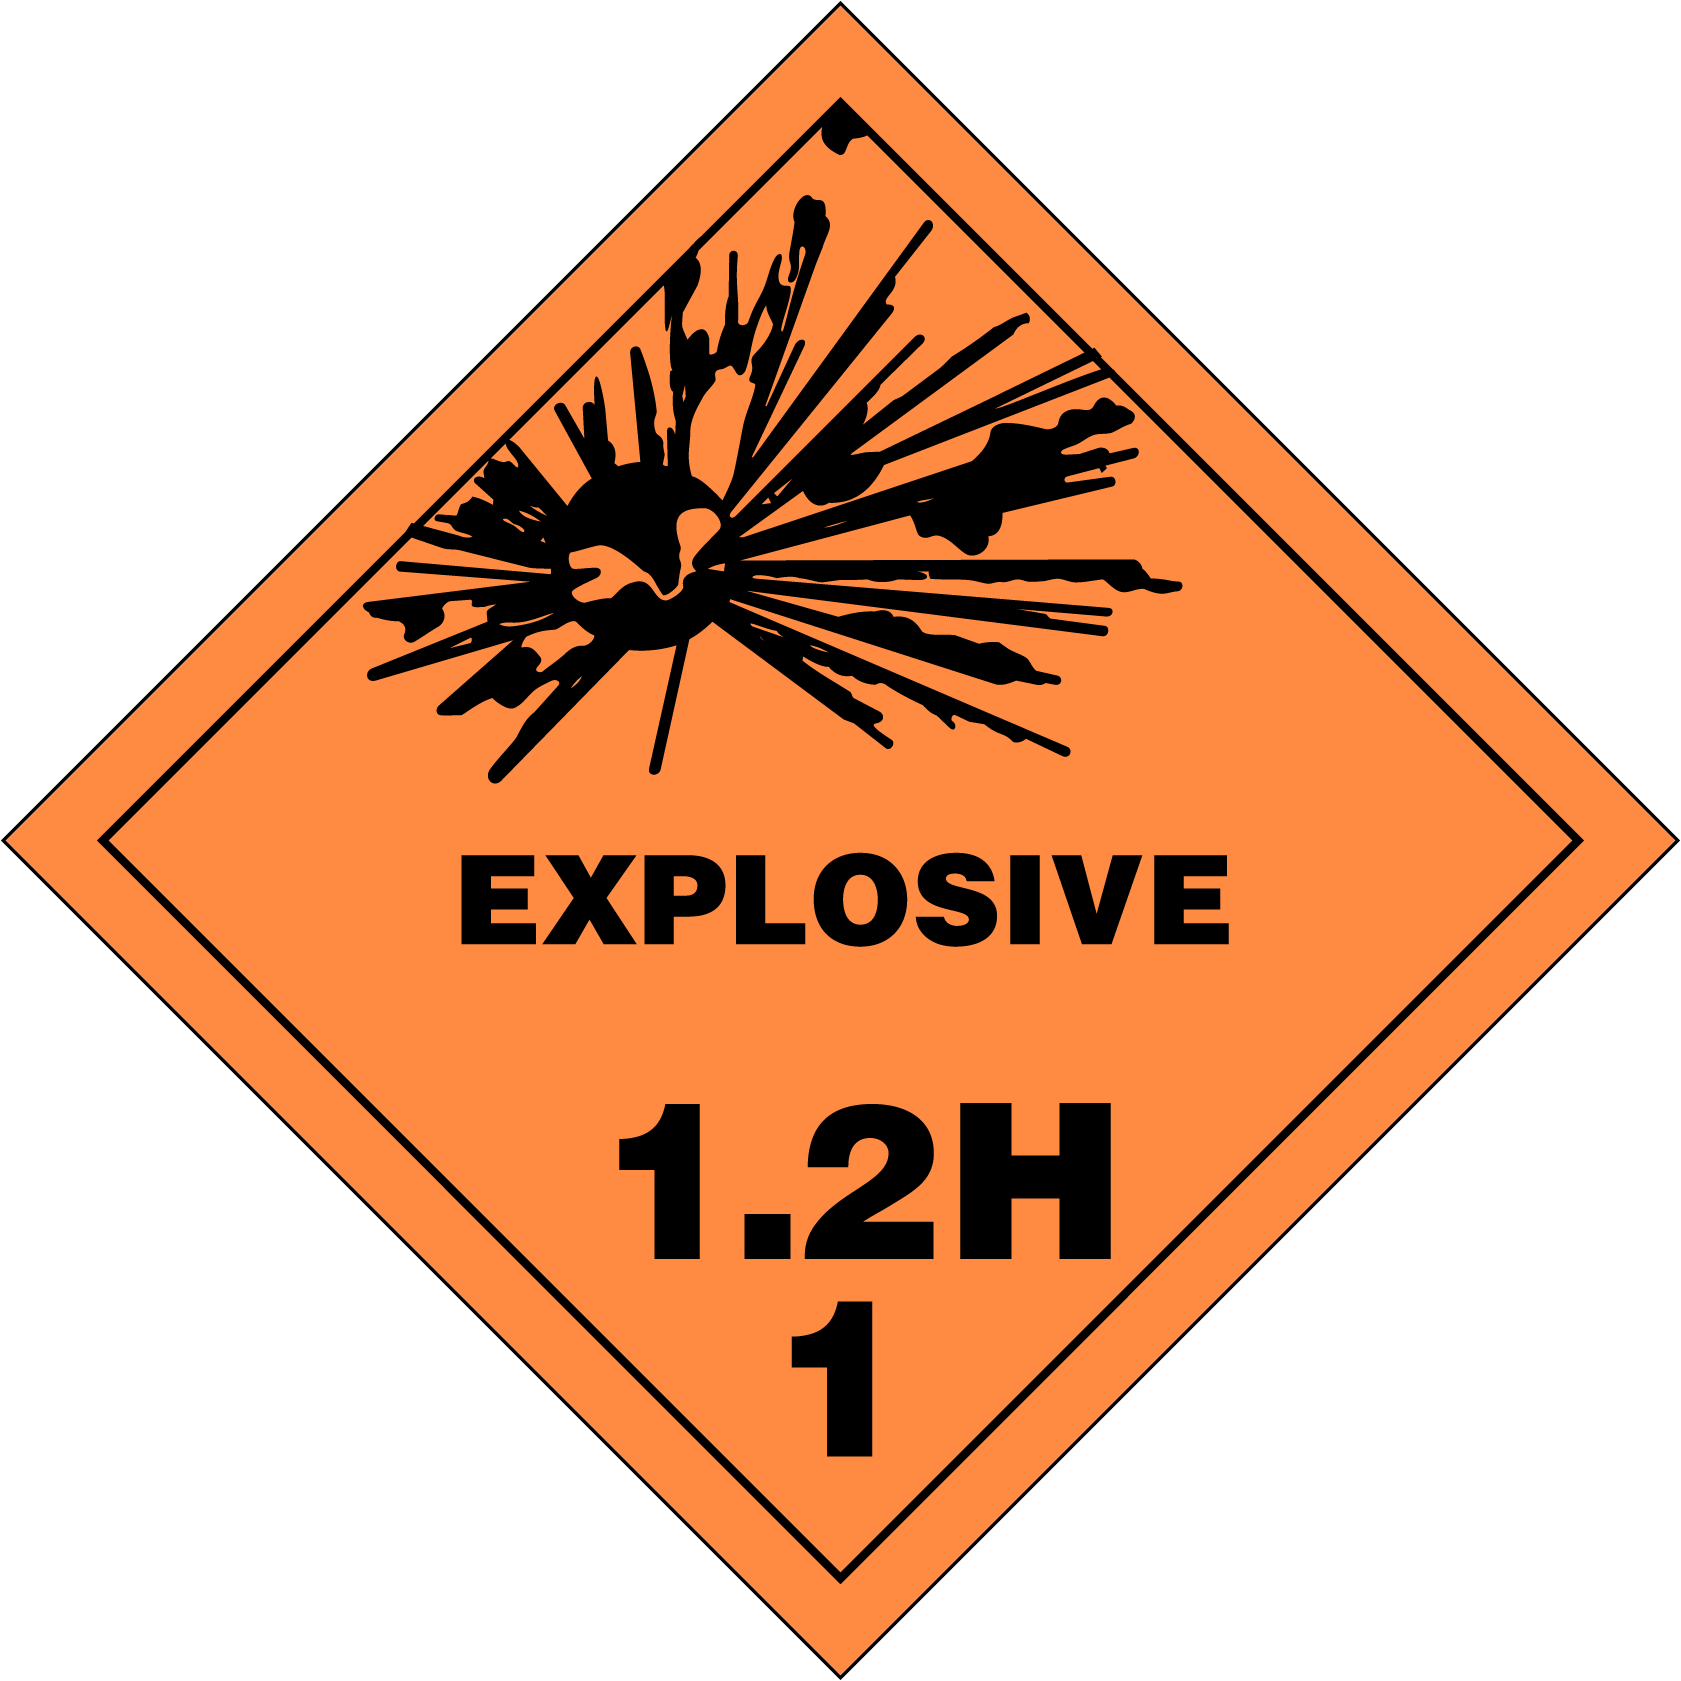 Explosives (1.2H)